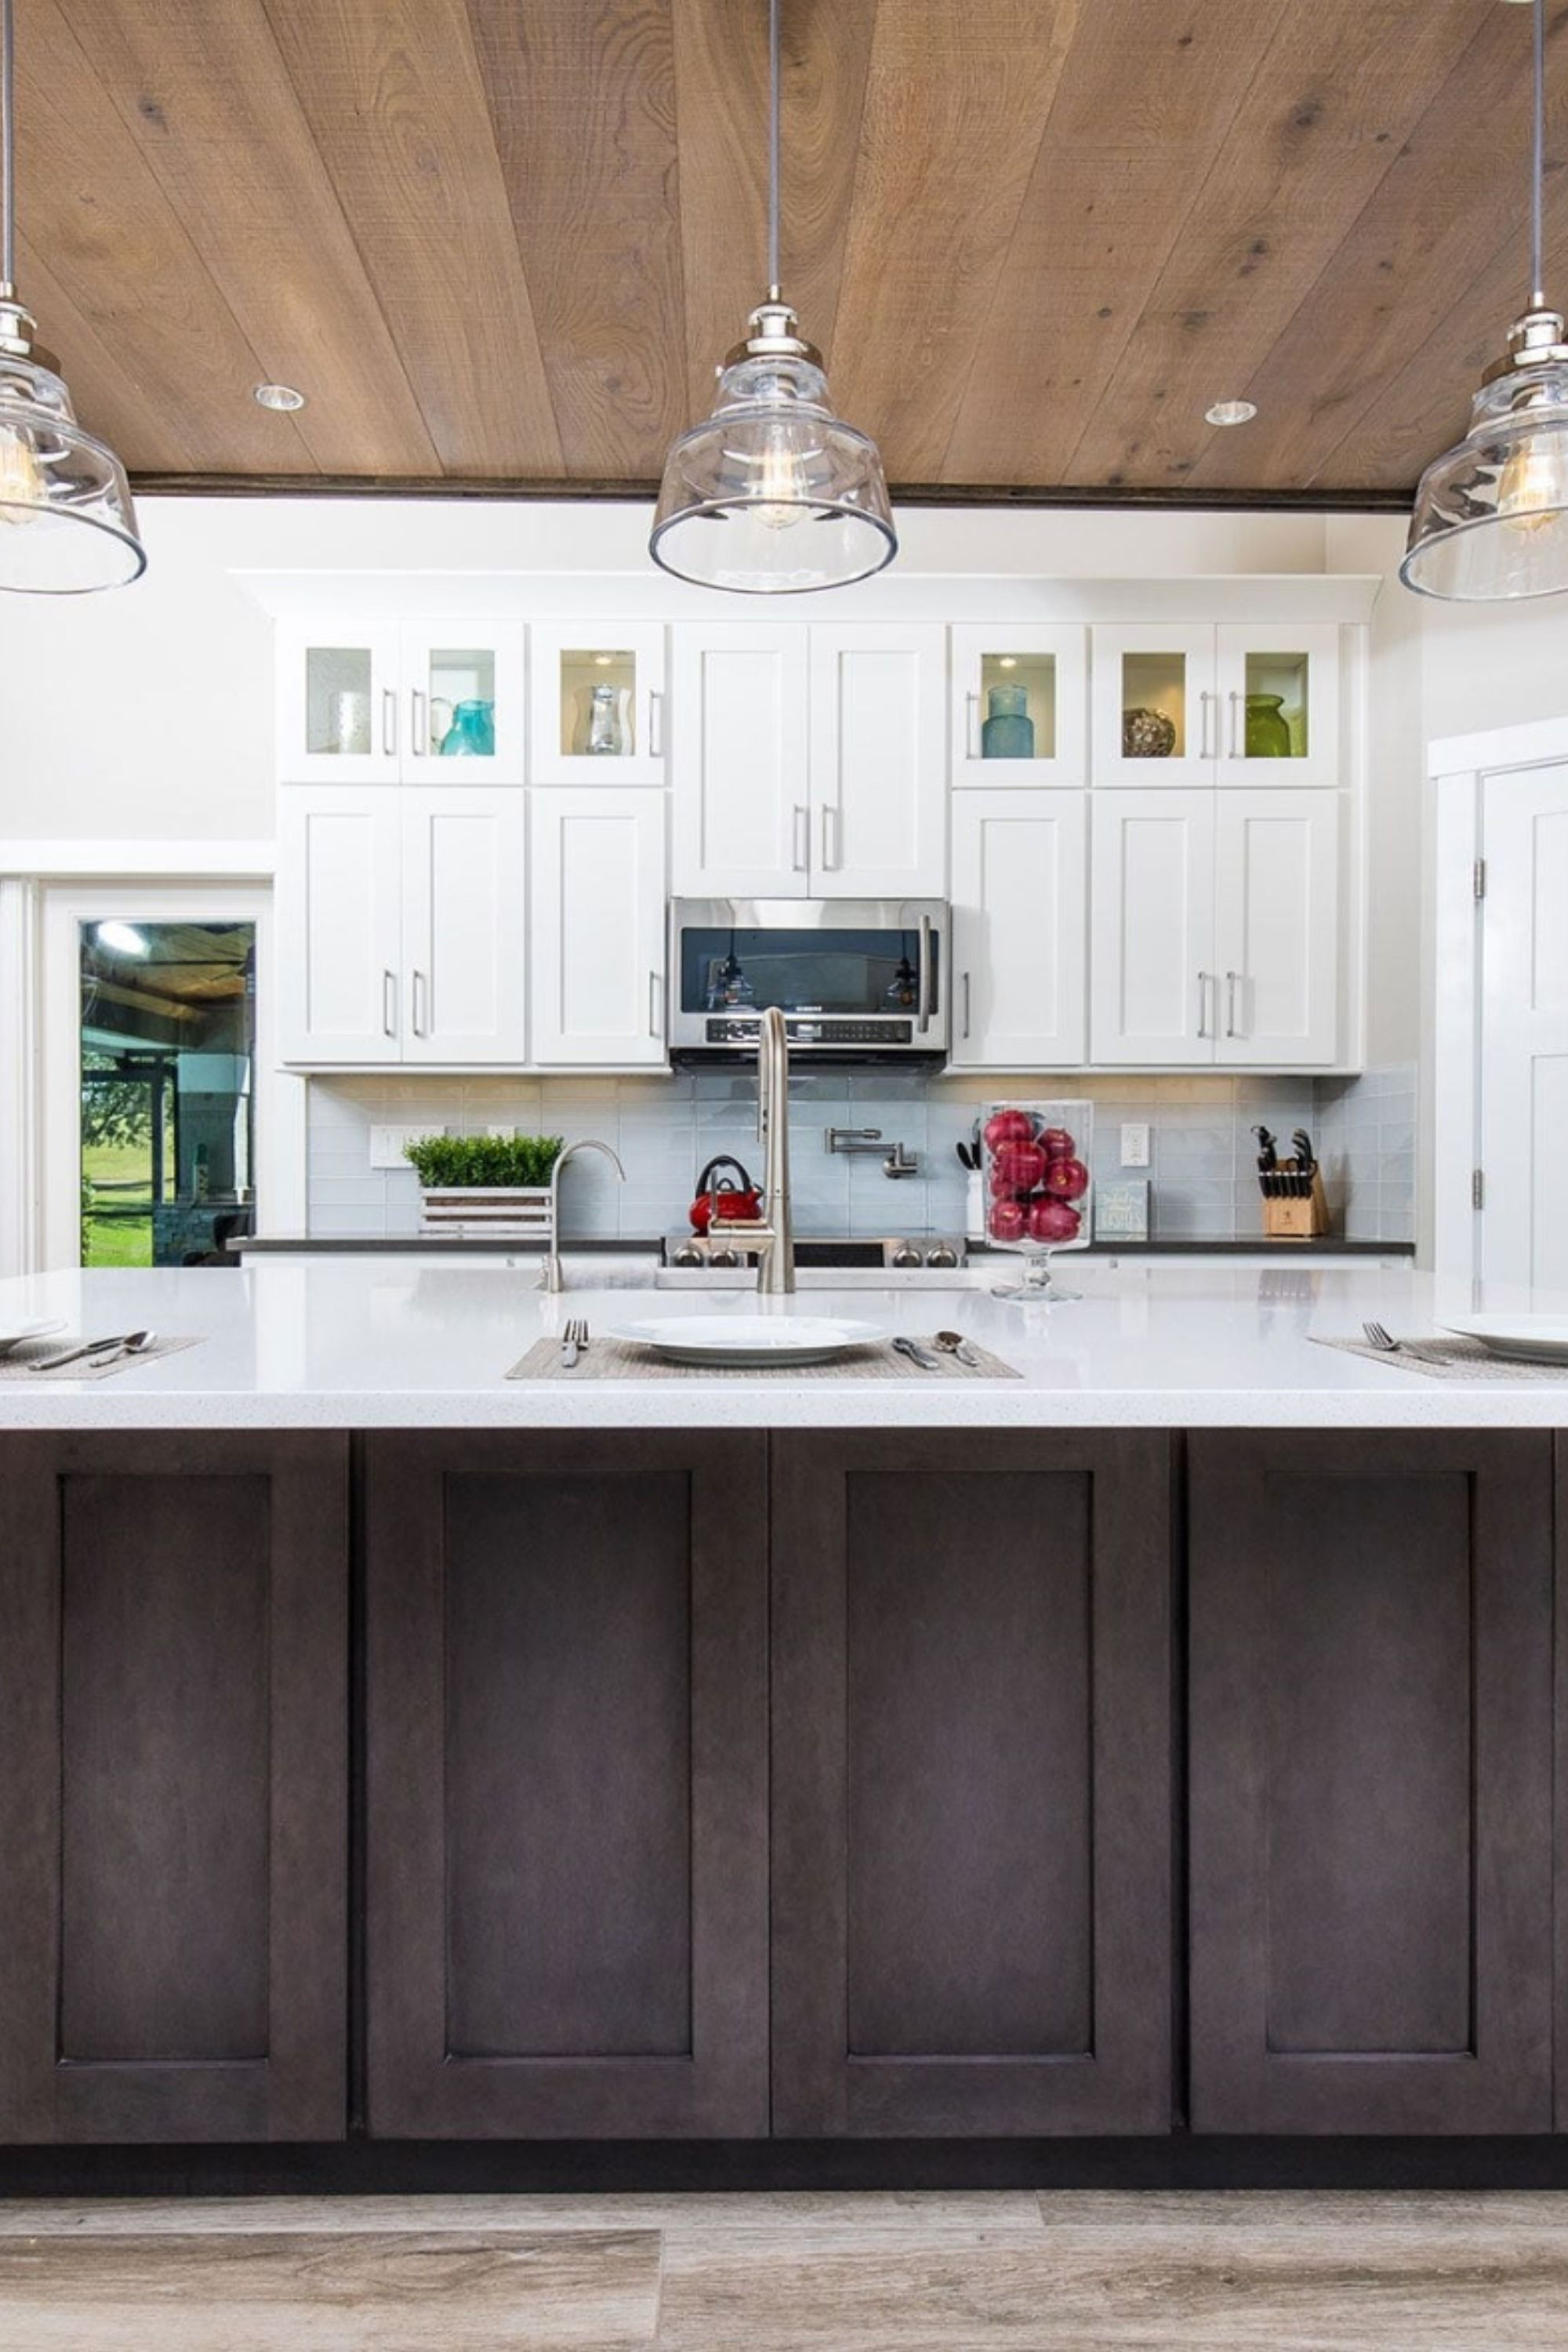 intimate lighting in shaker kitchen in 2020 shaker style cabinets gray and white kitchen new on kitchen remodel light wood cabinets id=47770